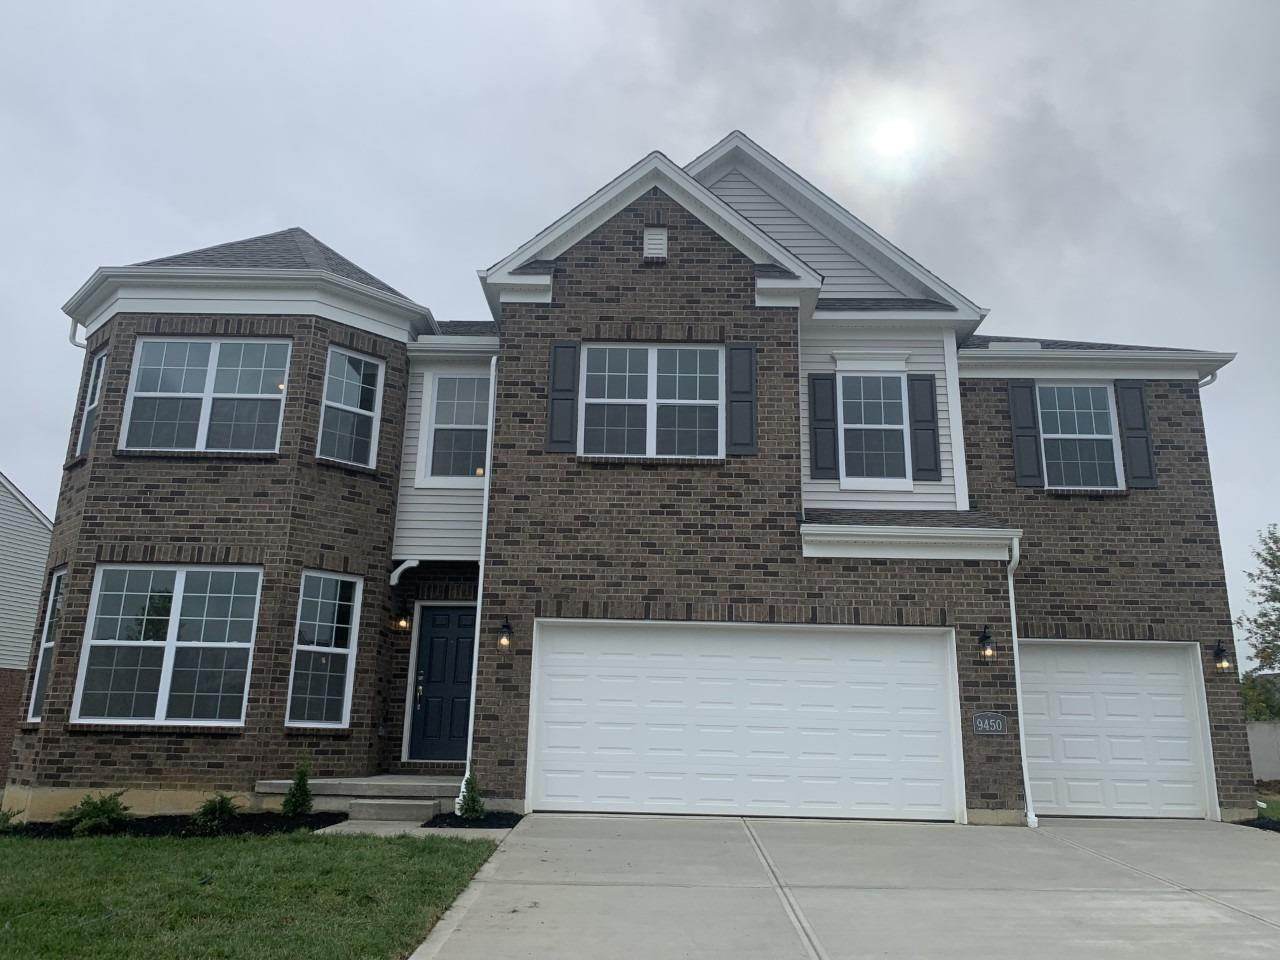 9450 West Meadow Drive West Chester - East, OH